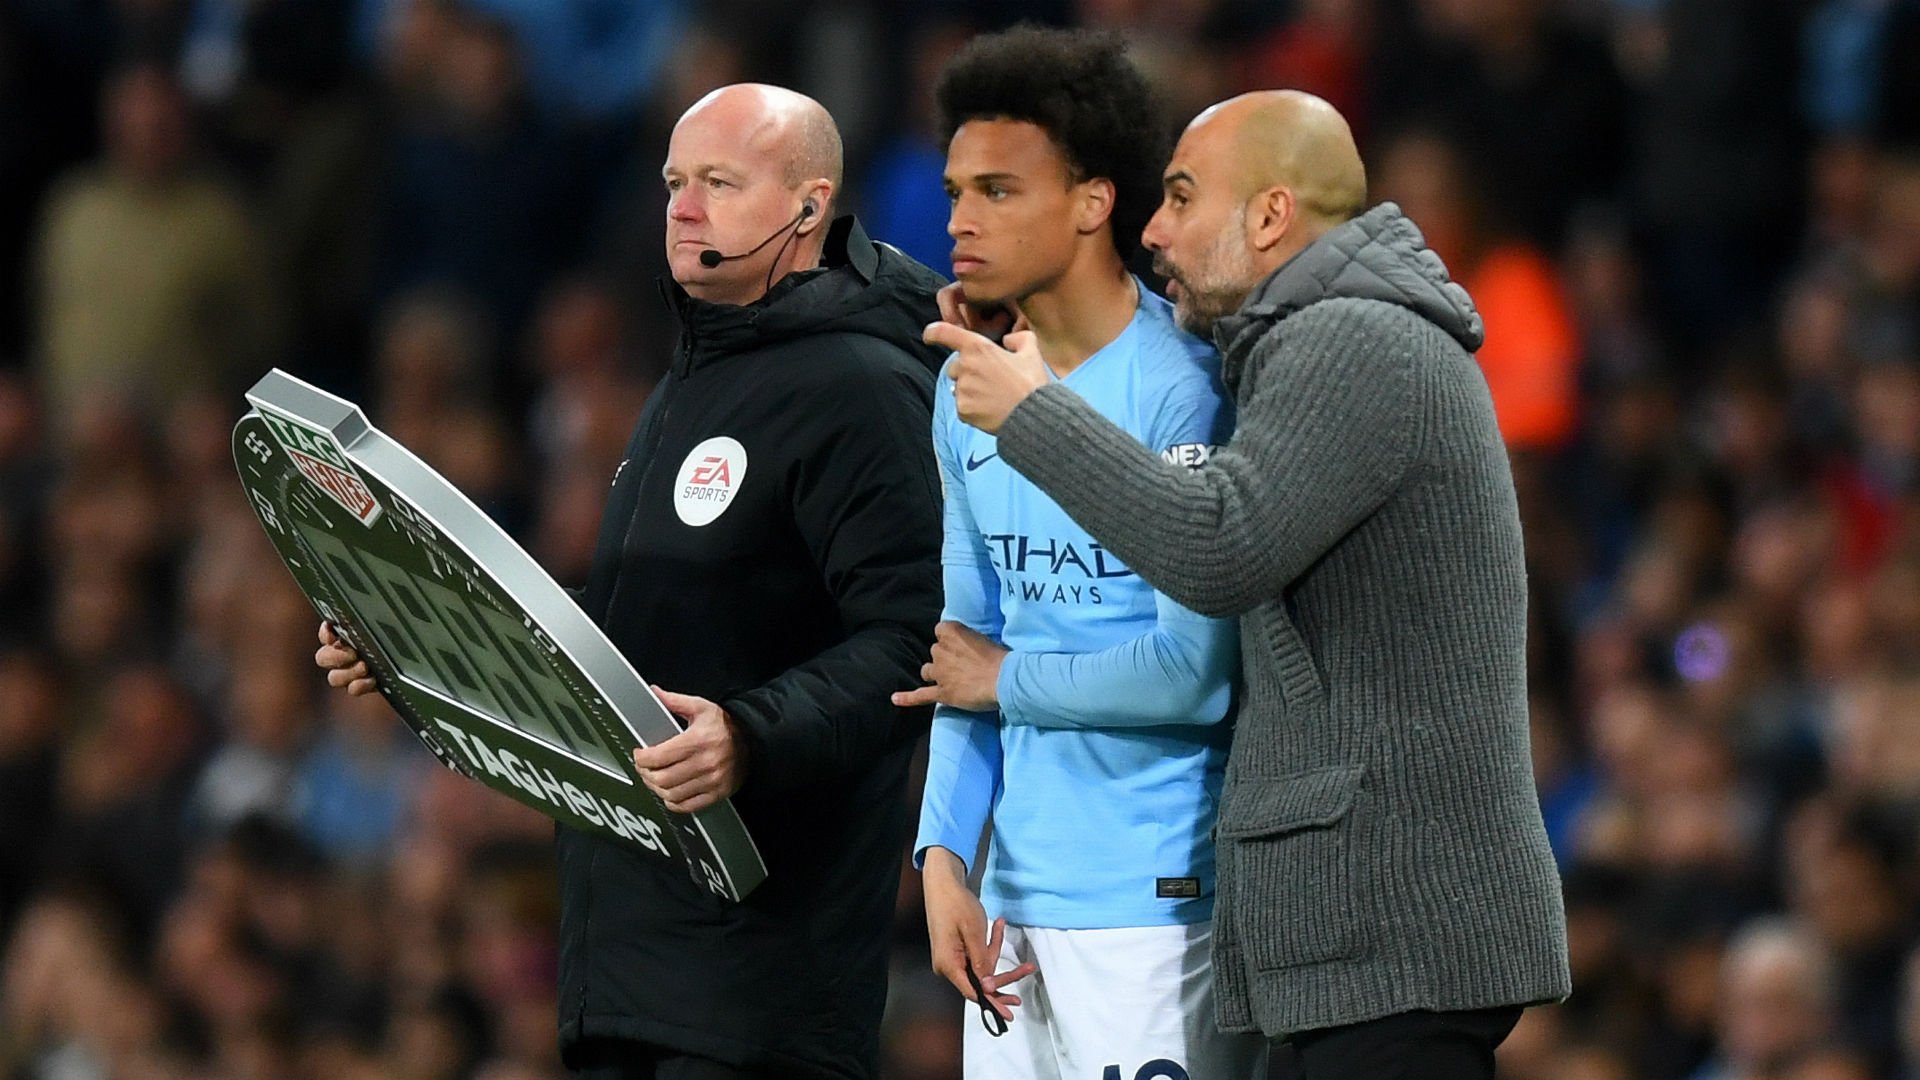 His future is not in my hands - Guardiola says Sane relationship not strained by Bayern speculation